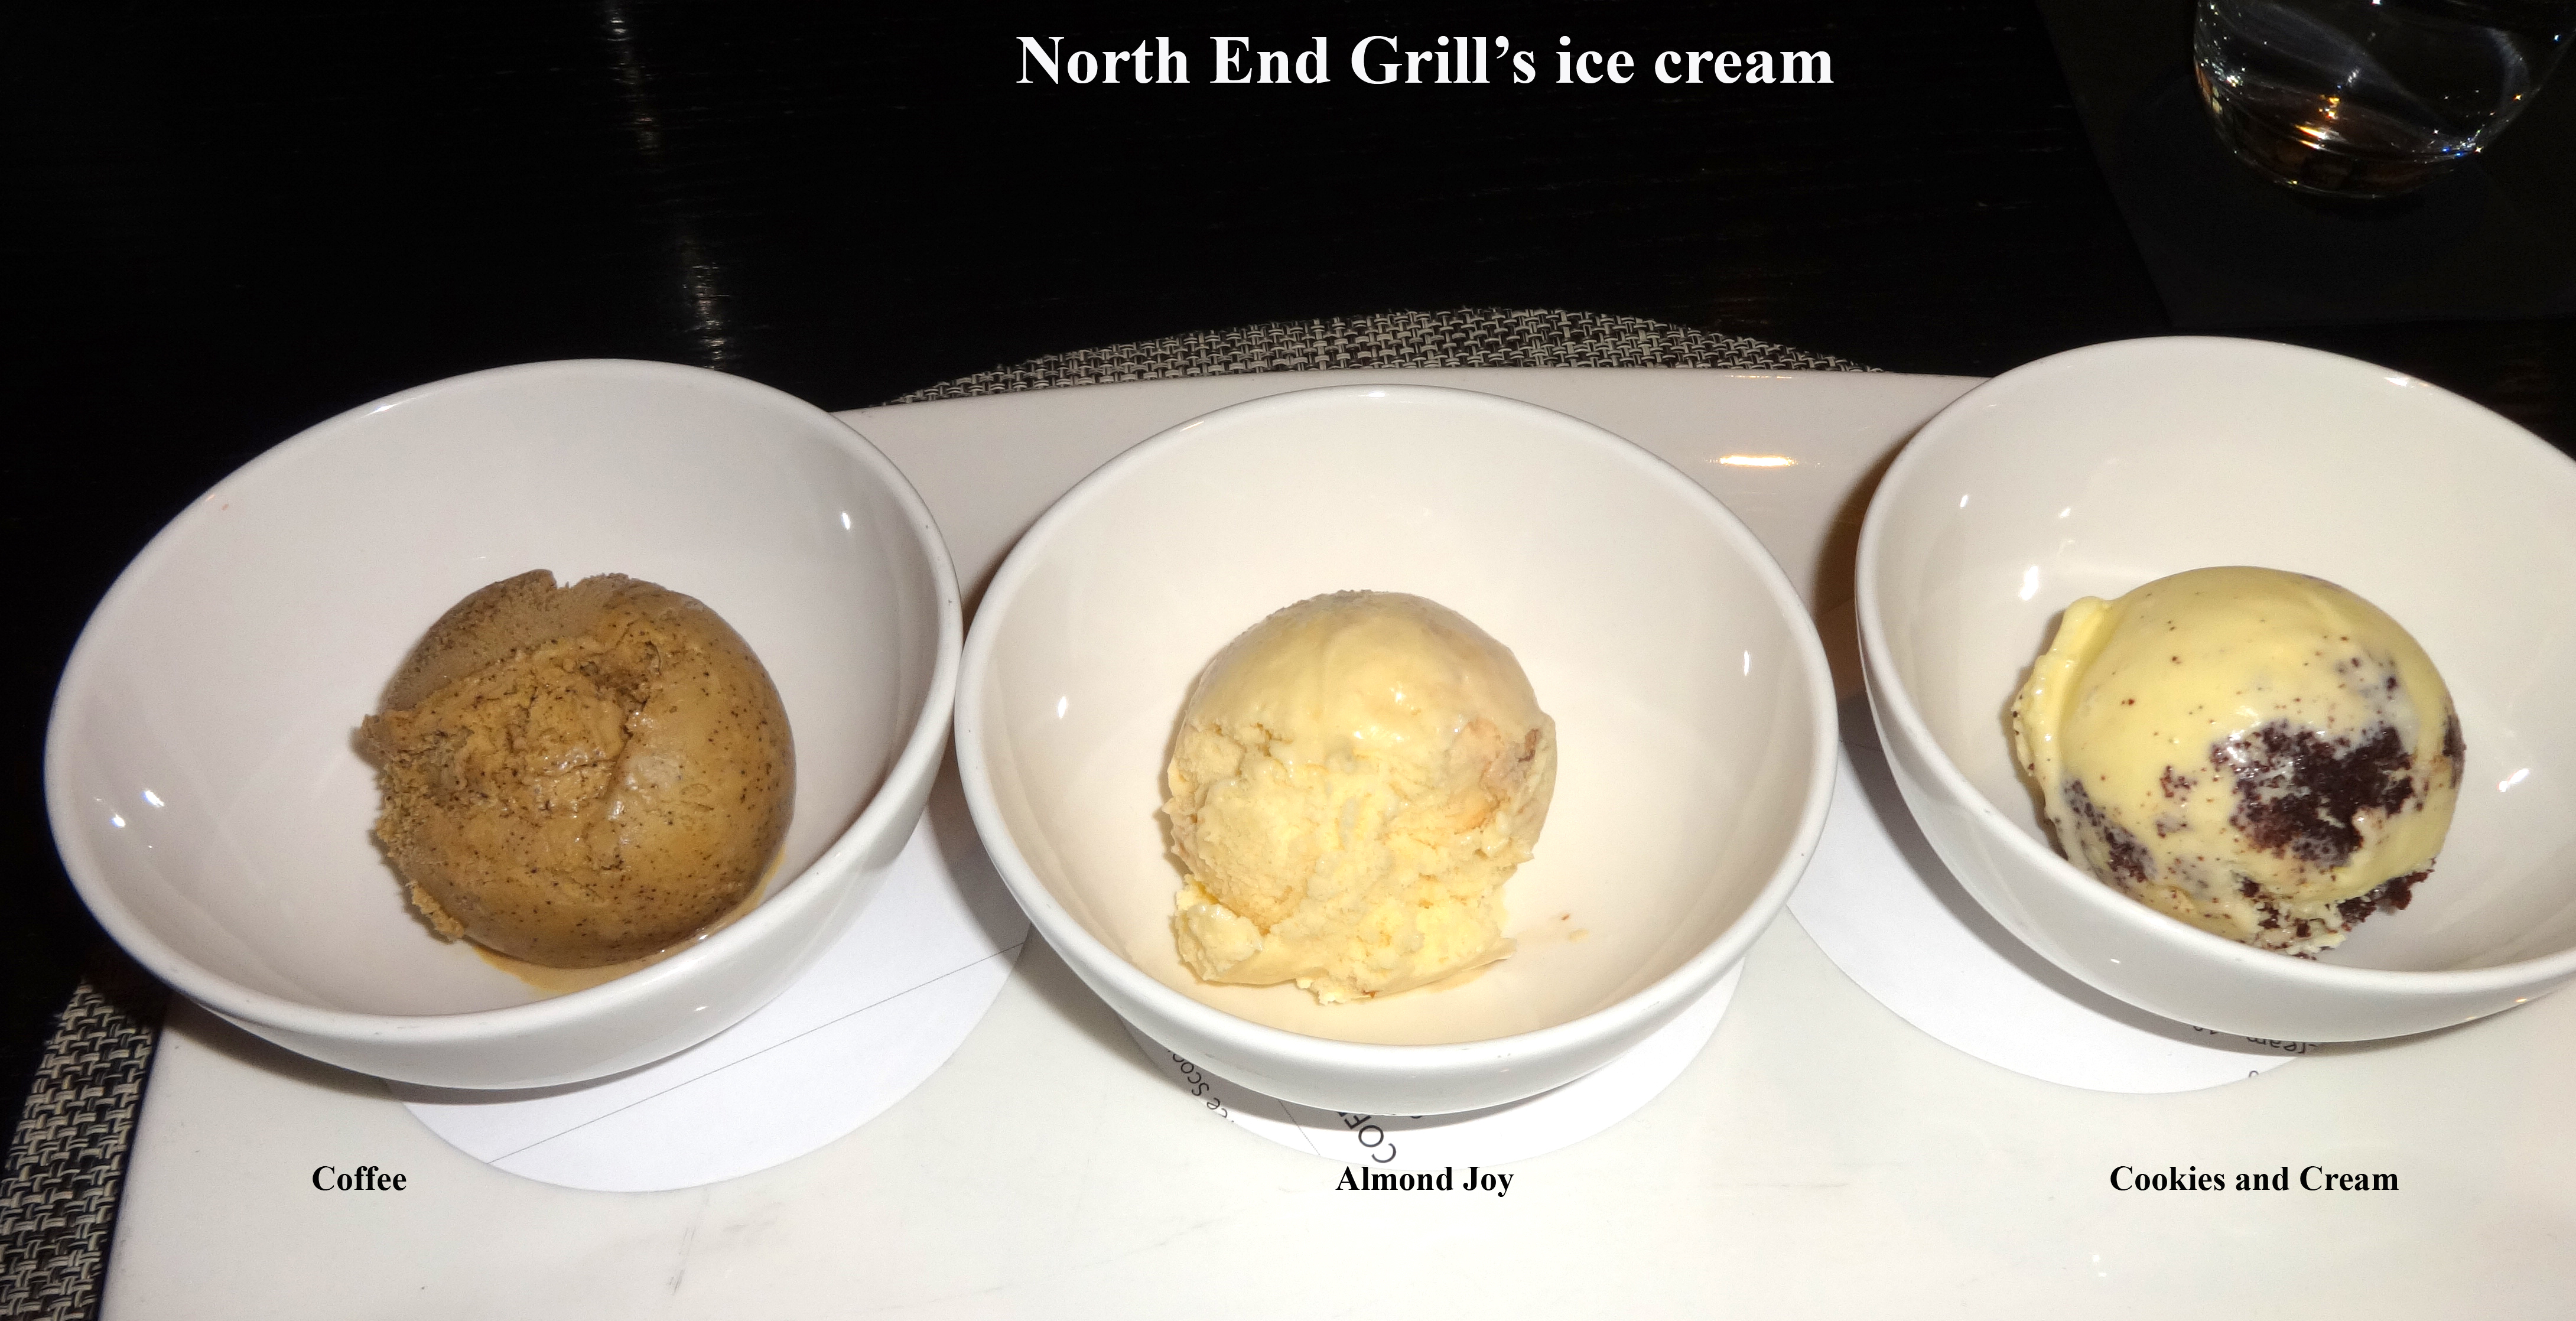 North End Grill ice cream